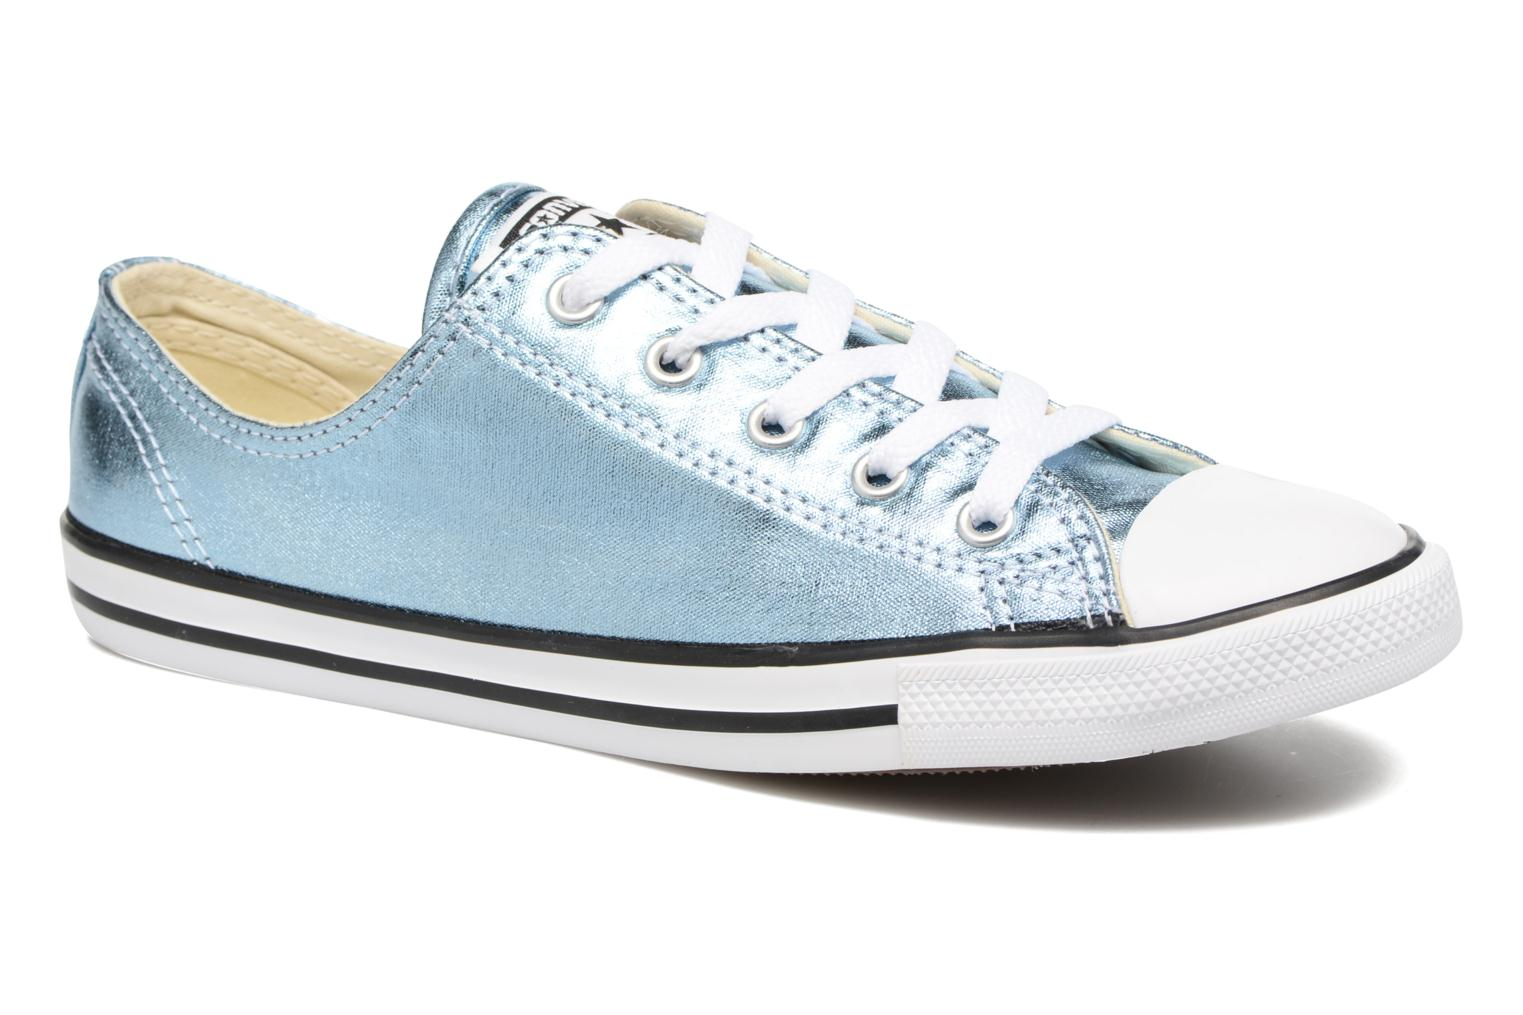 Chuck Taylor All Star Dainty Ox Metallics Blue Coast/Black/White